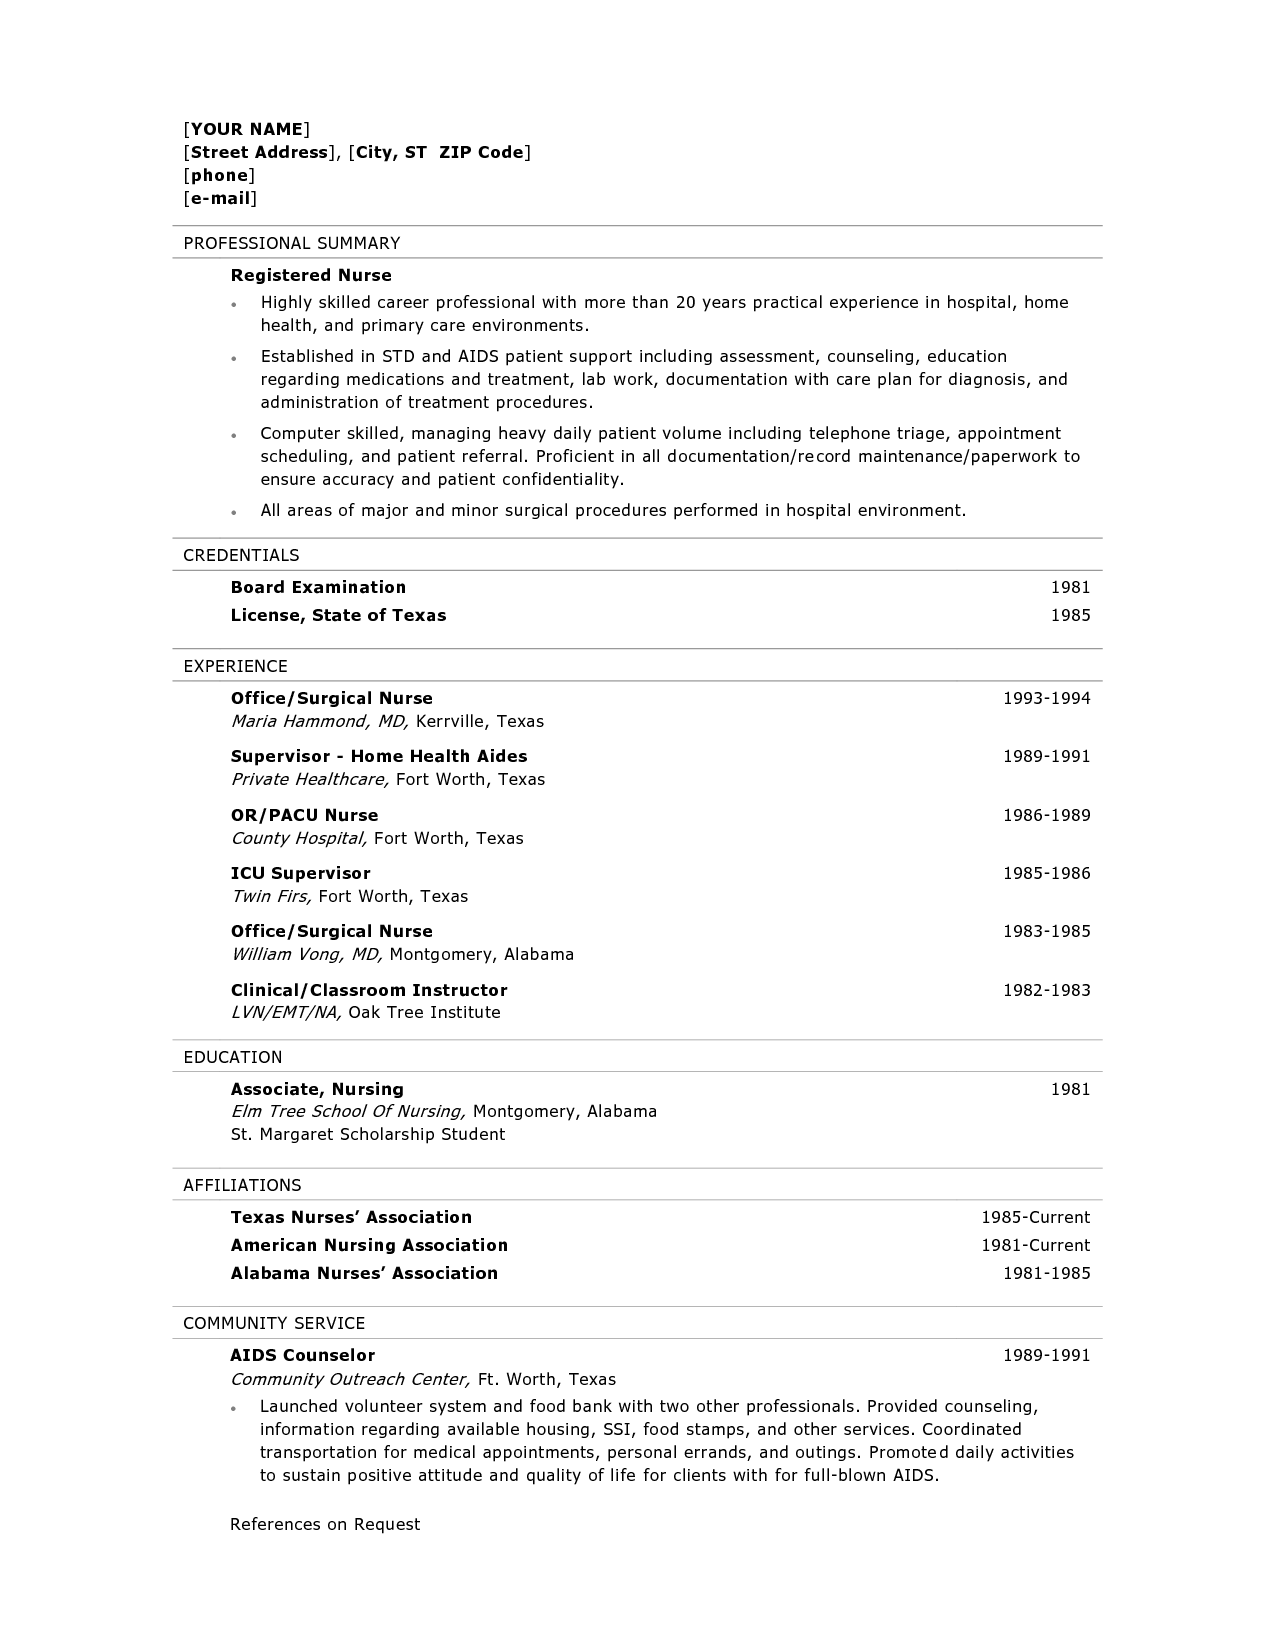 resume objective resume objective examples and nursing resume on objective resume sample